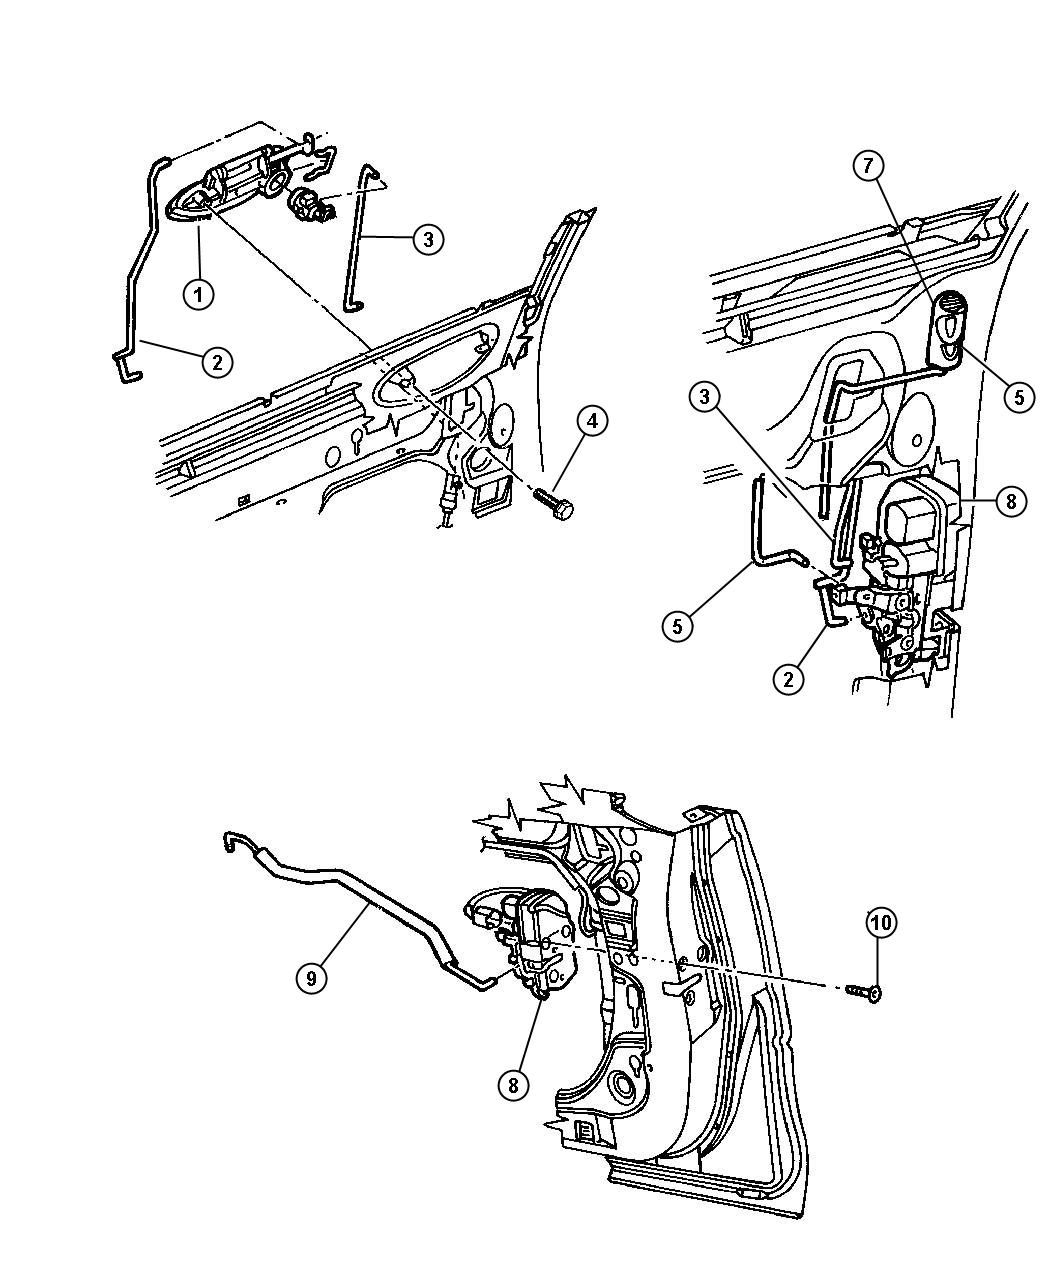 Service manual [Removing Door Lock Cylinder 1999 Dodge